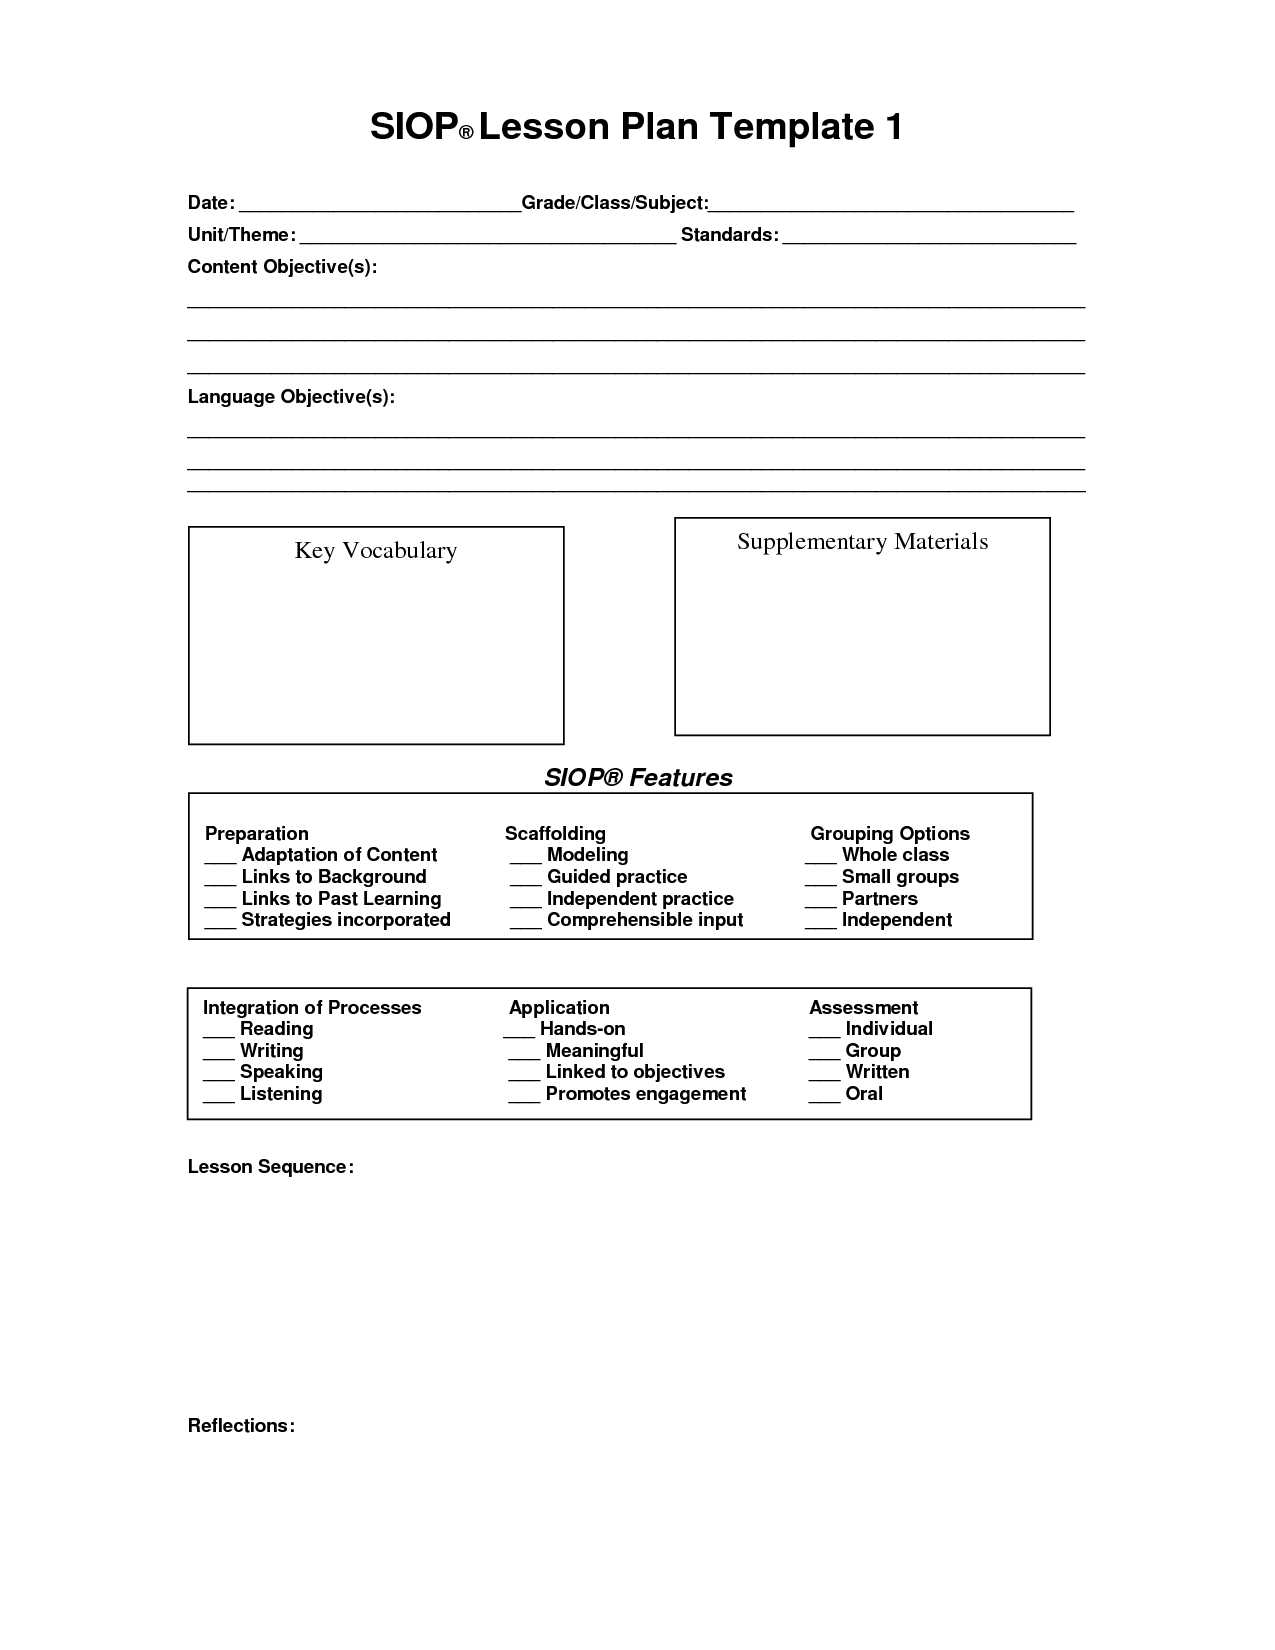 Virtual Lab Dna and Genes Worksheet or Siop Lesson Plan Template 1 Rptf7wvy Science Pinterest